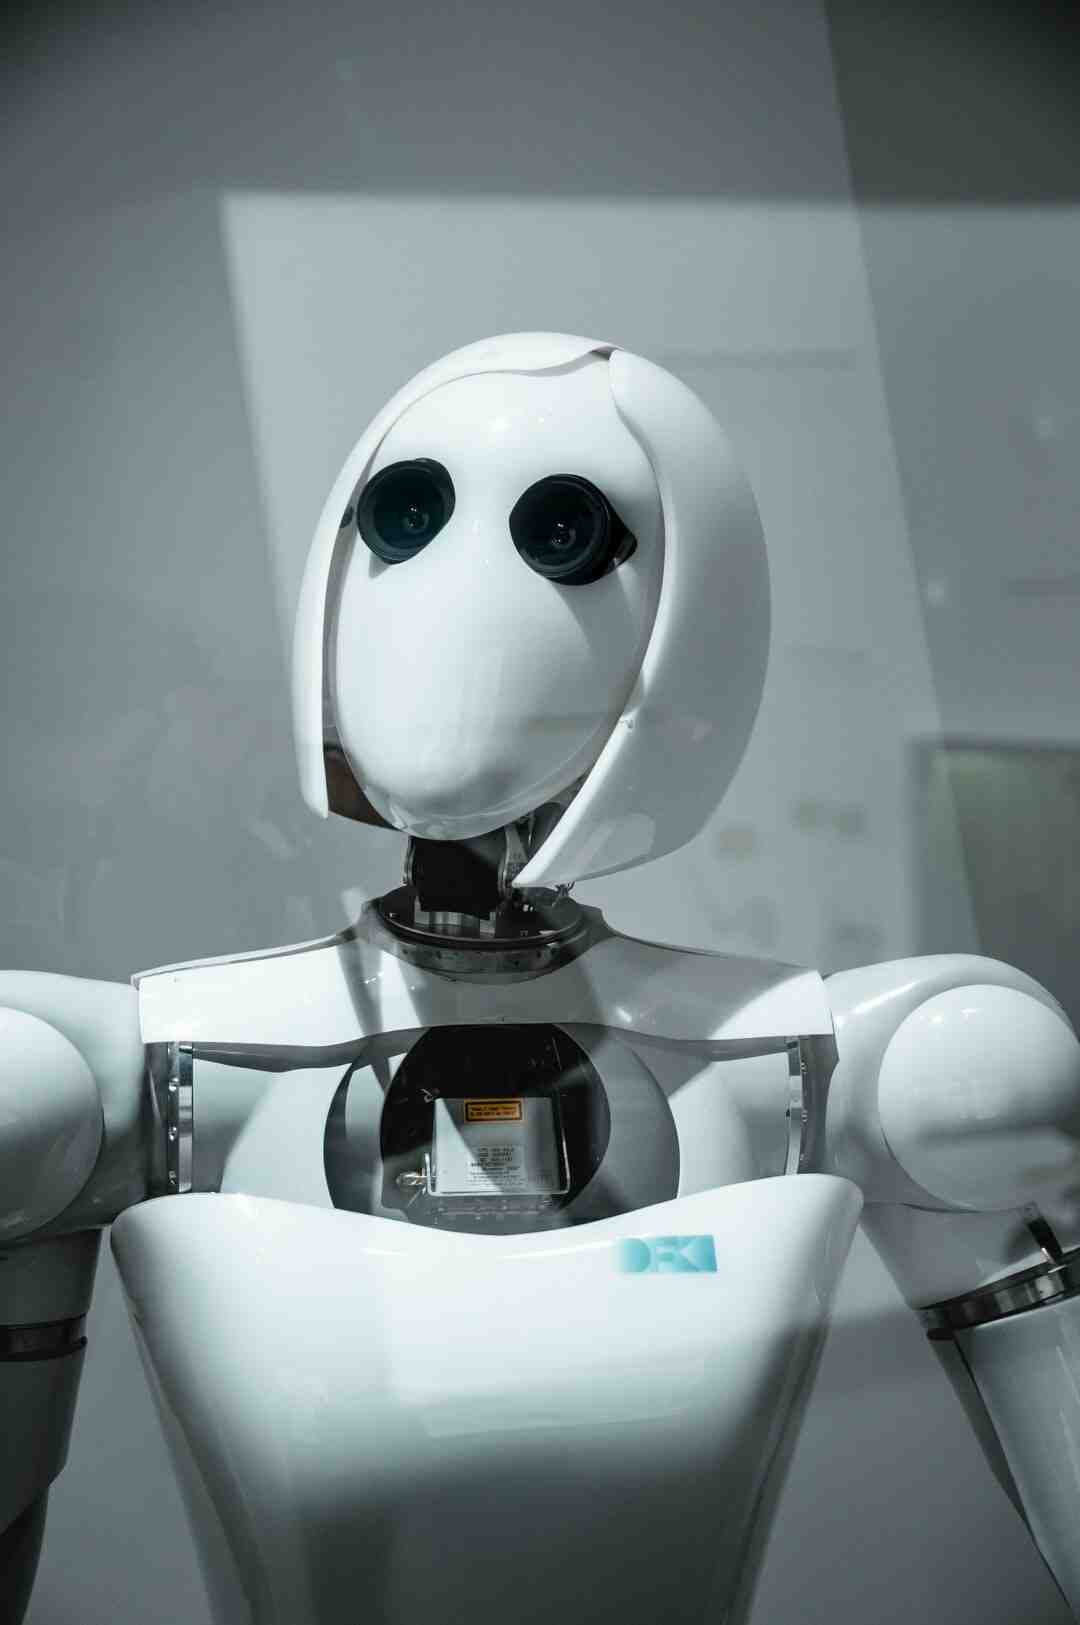 How much does a Nao robot cost?